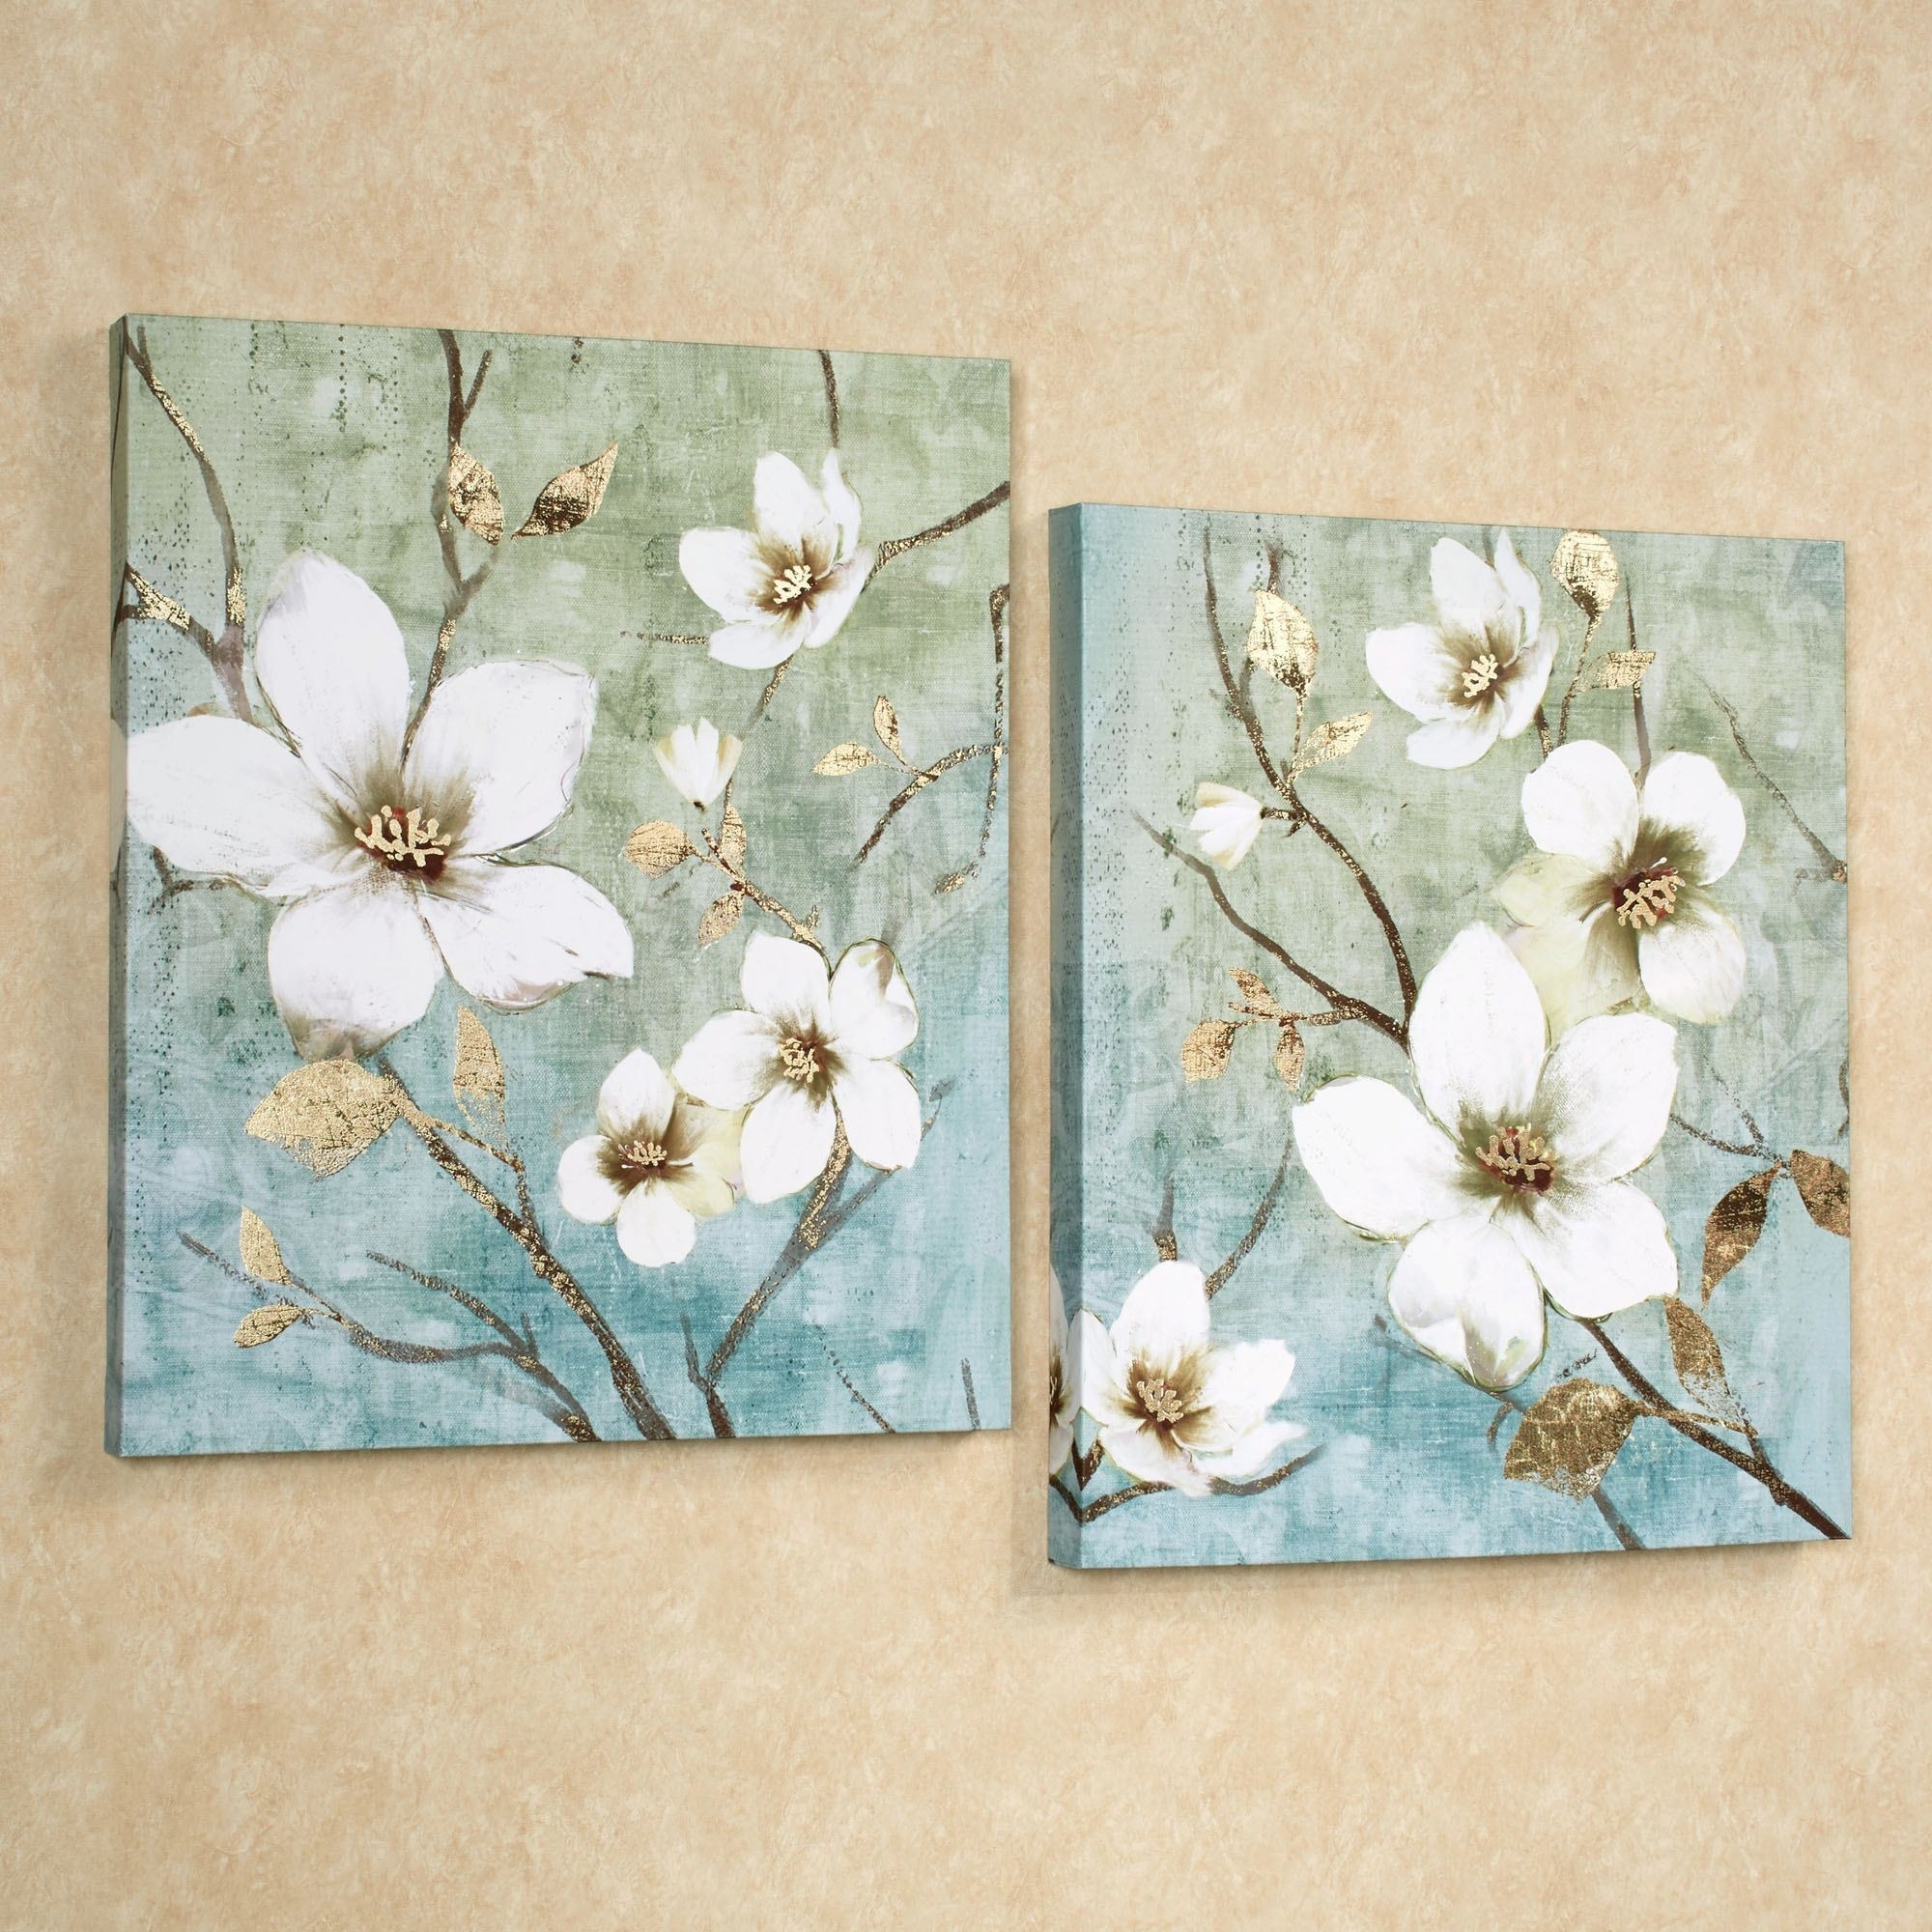 In Bloom Floral Canvas Wall Art Set With Newest Canvas Wall Art Of Flowers (View 2 of 15)